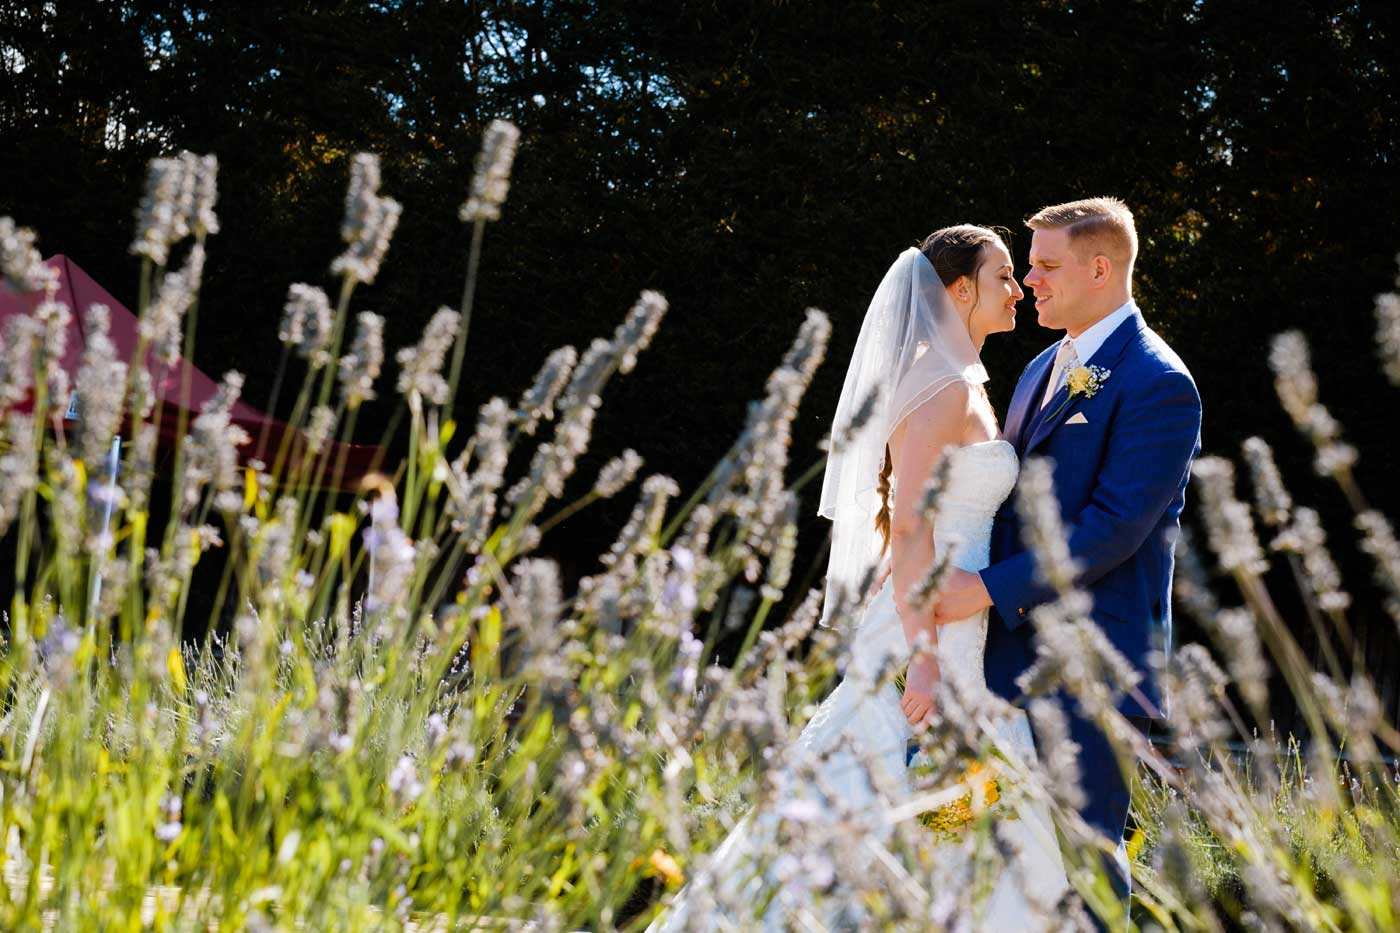 Bride and groom in grounds of Rowton Castle